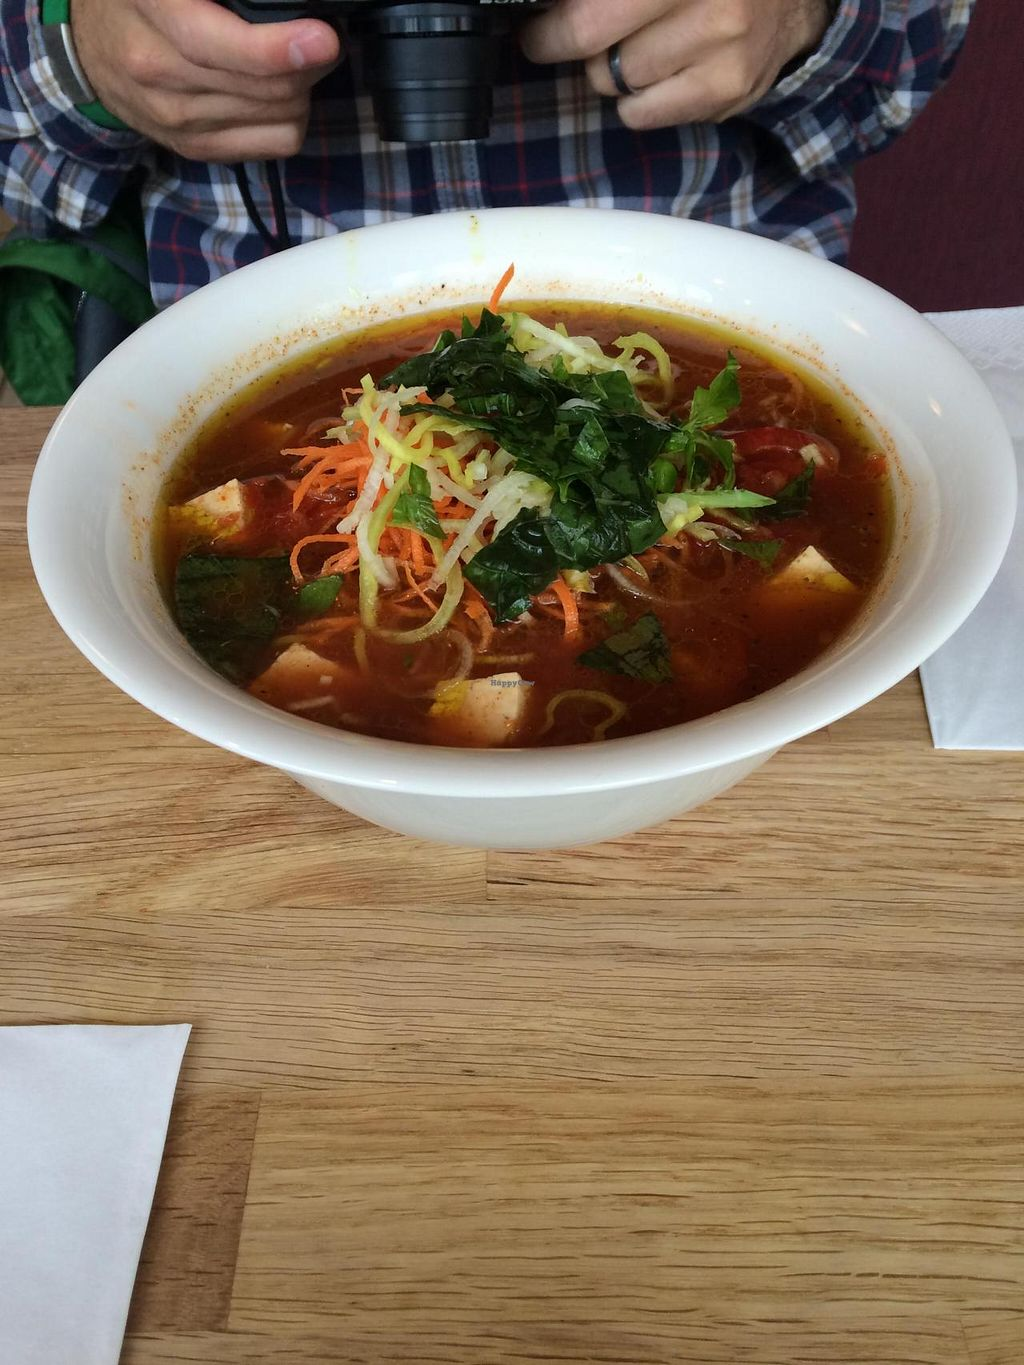 """Photo of Nudluskalin  by <a href=""""/members/profile/pdxjayhawk"""">pdxjayhawk</a> <br/>Another vegan bowl of delicious noodles <br/> April 6, 2015  - <a href='/contact/abuse/image/22006/98118'>Report</a>"""